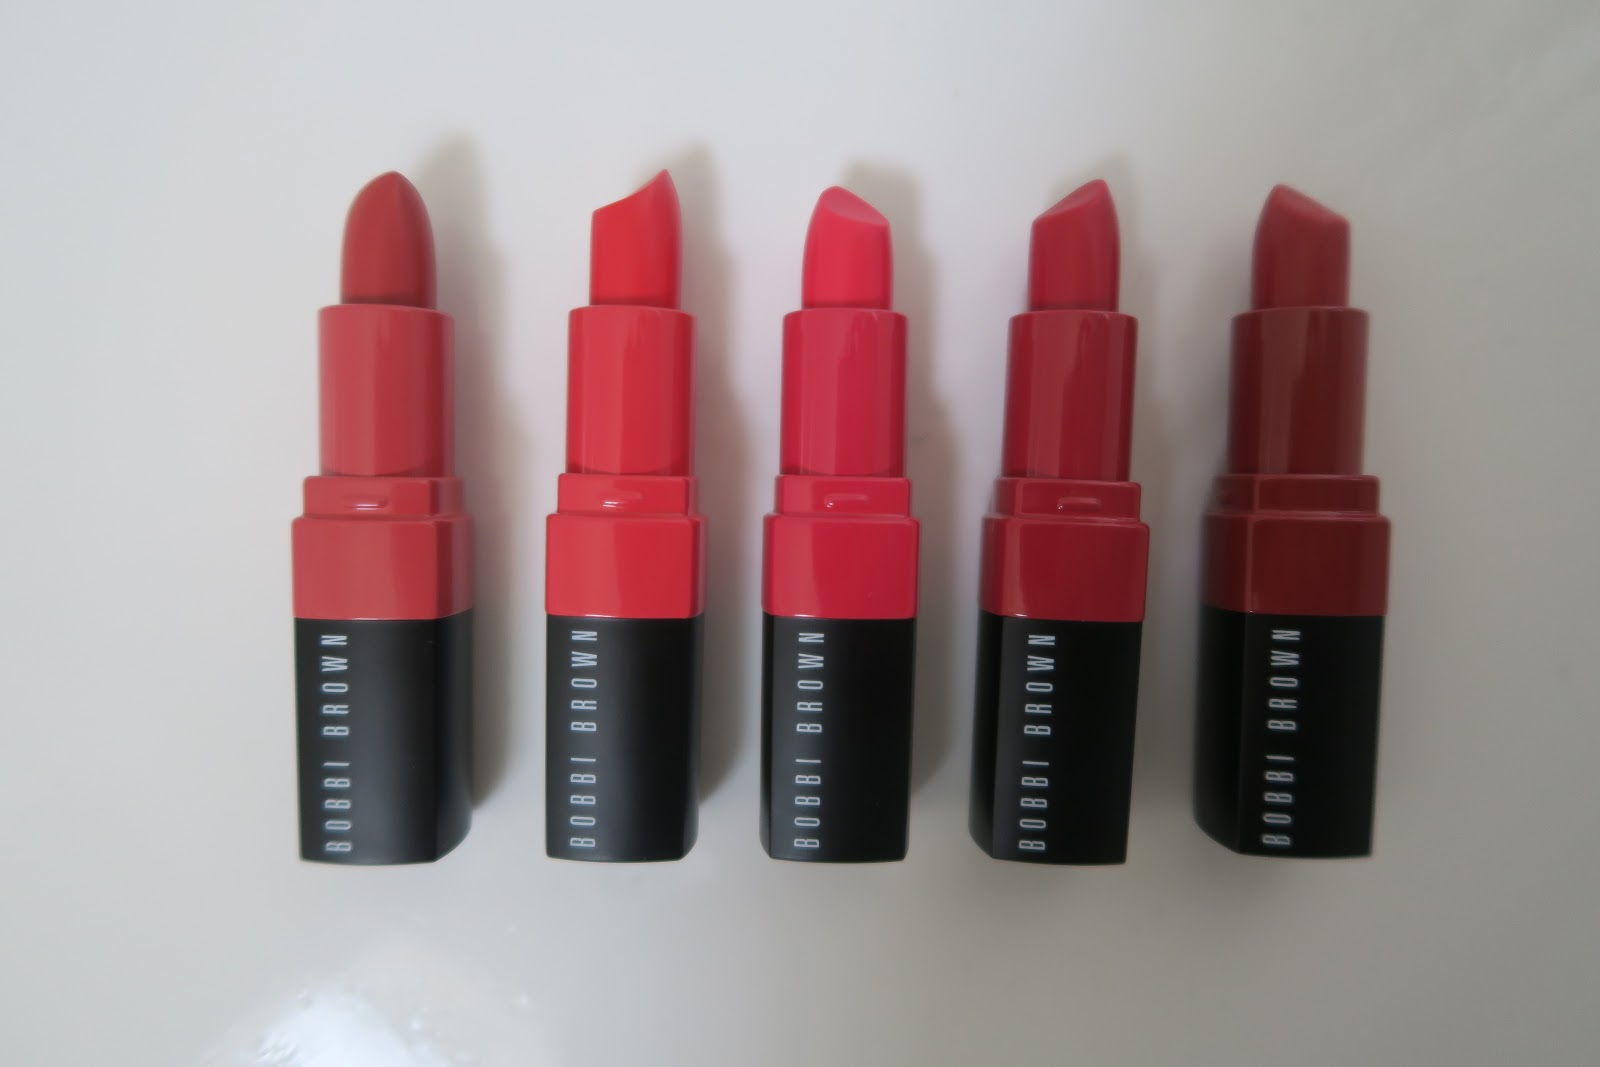 Bobbi Brown Crushed Lip Colors